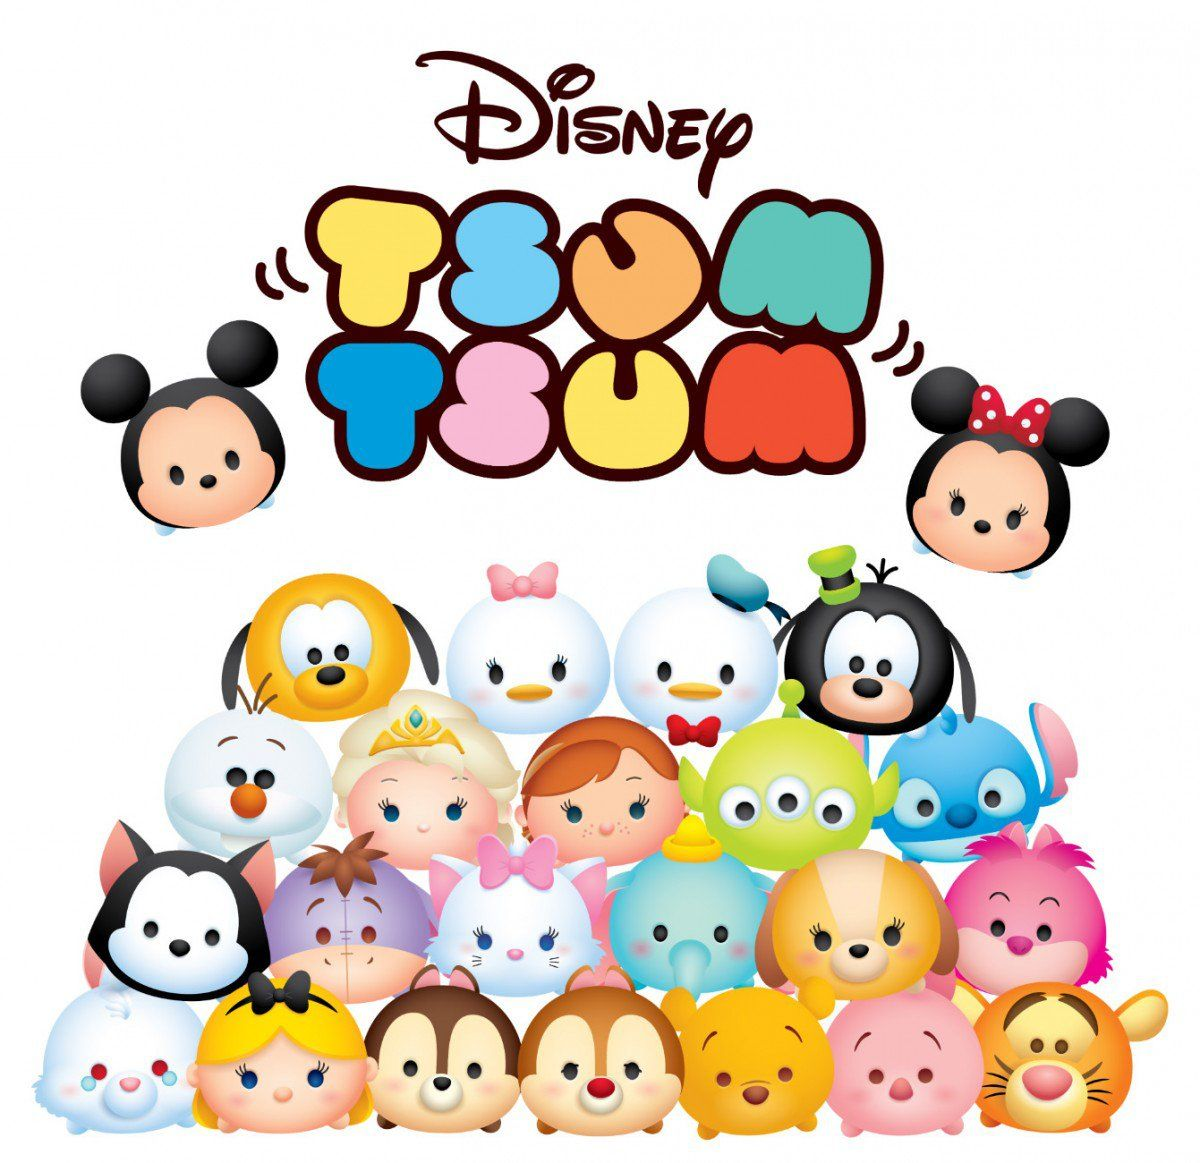 disney tsum tsum wallpapers top free disney tsum tsum backgrounds wallpaperaccess disney tsum tsum wallpapers top free